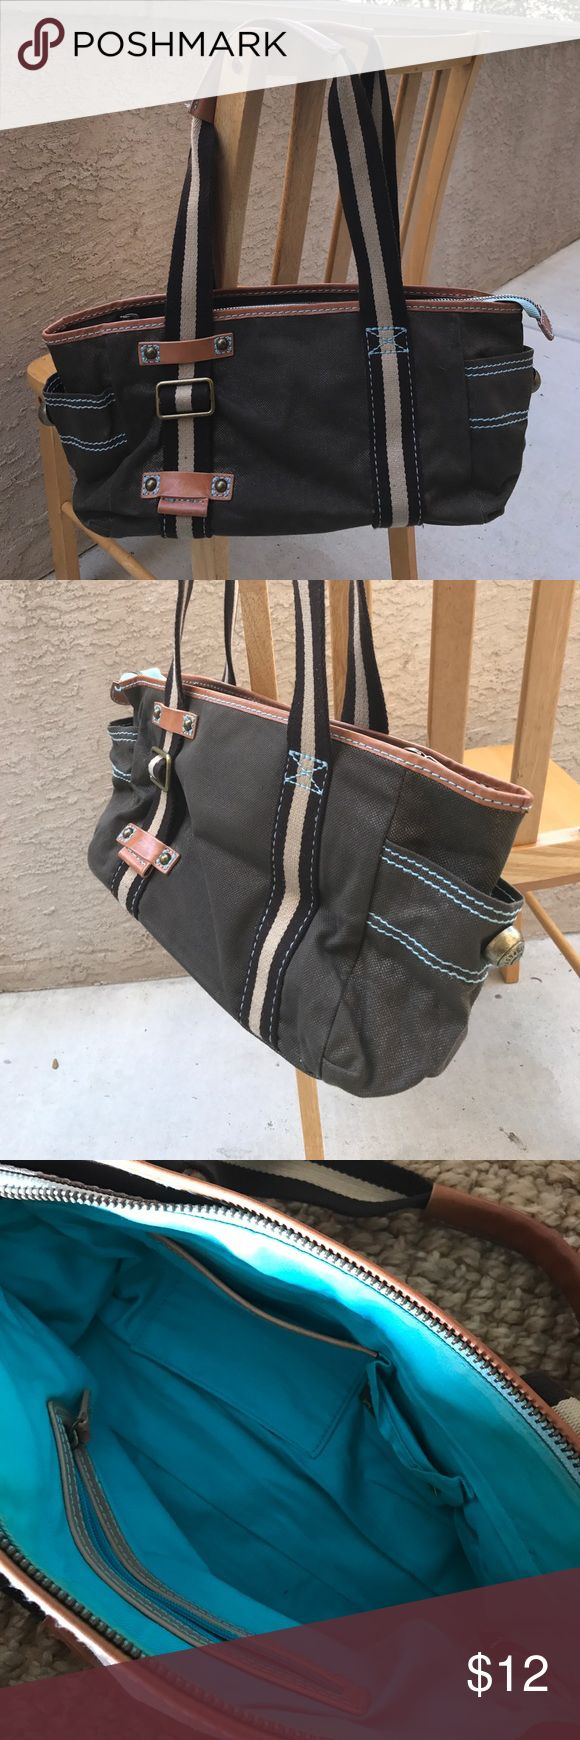 🎉 Price drop!🎉 Gap purse Gently used. Please look at all pictures, it shows all wear. GAP Bags